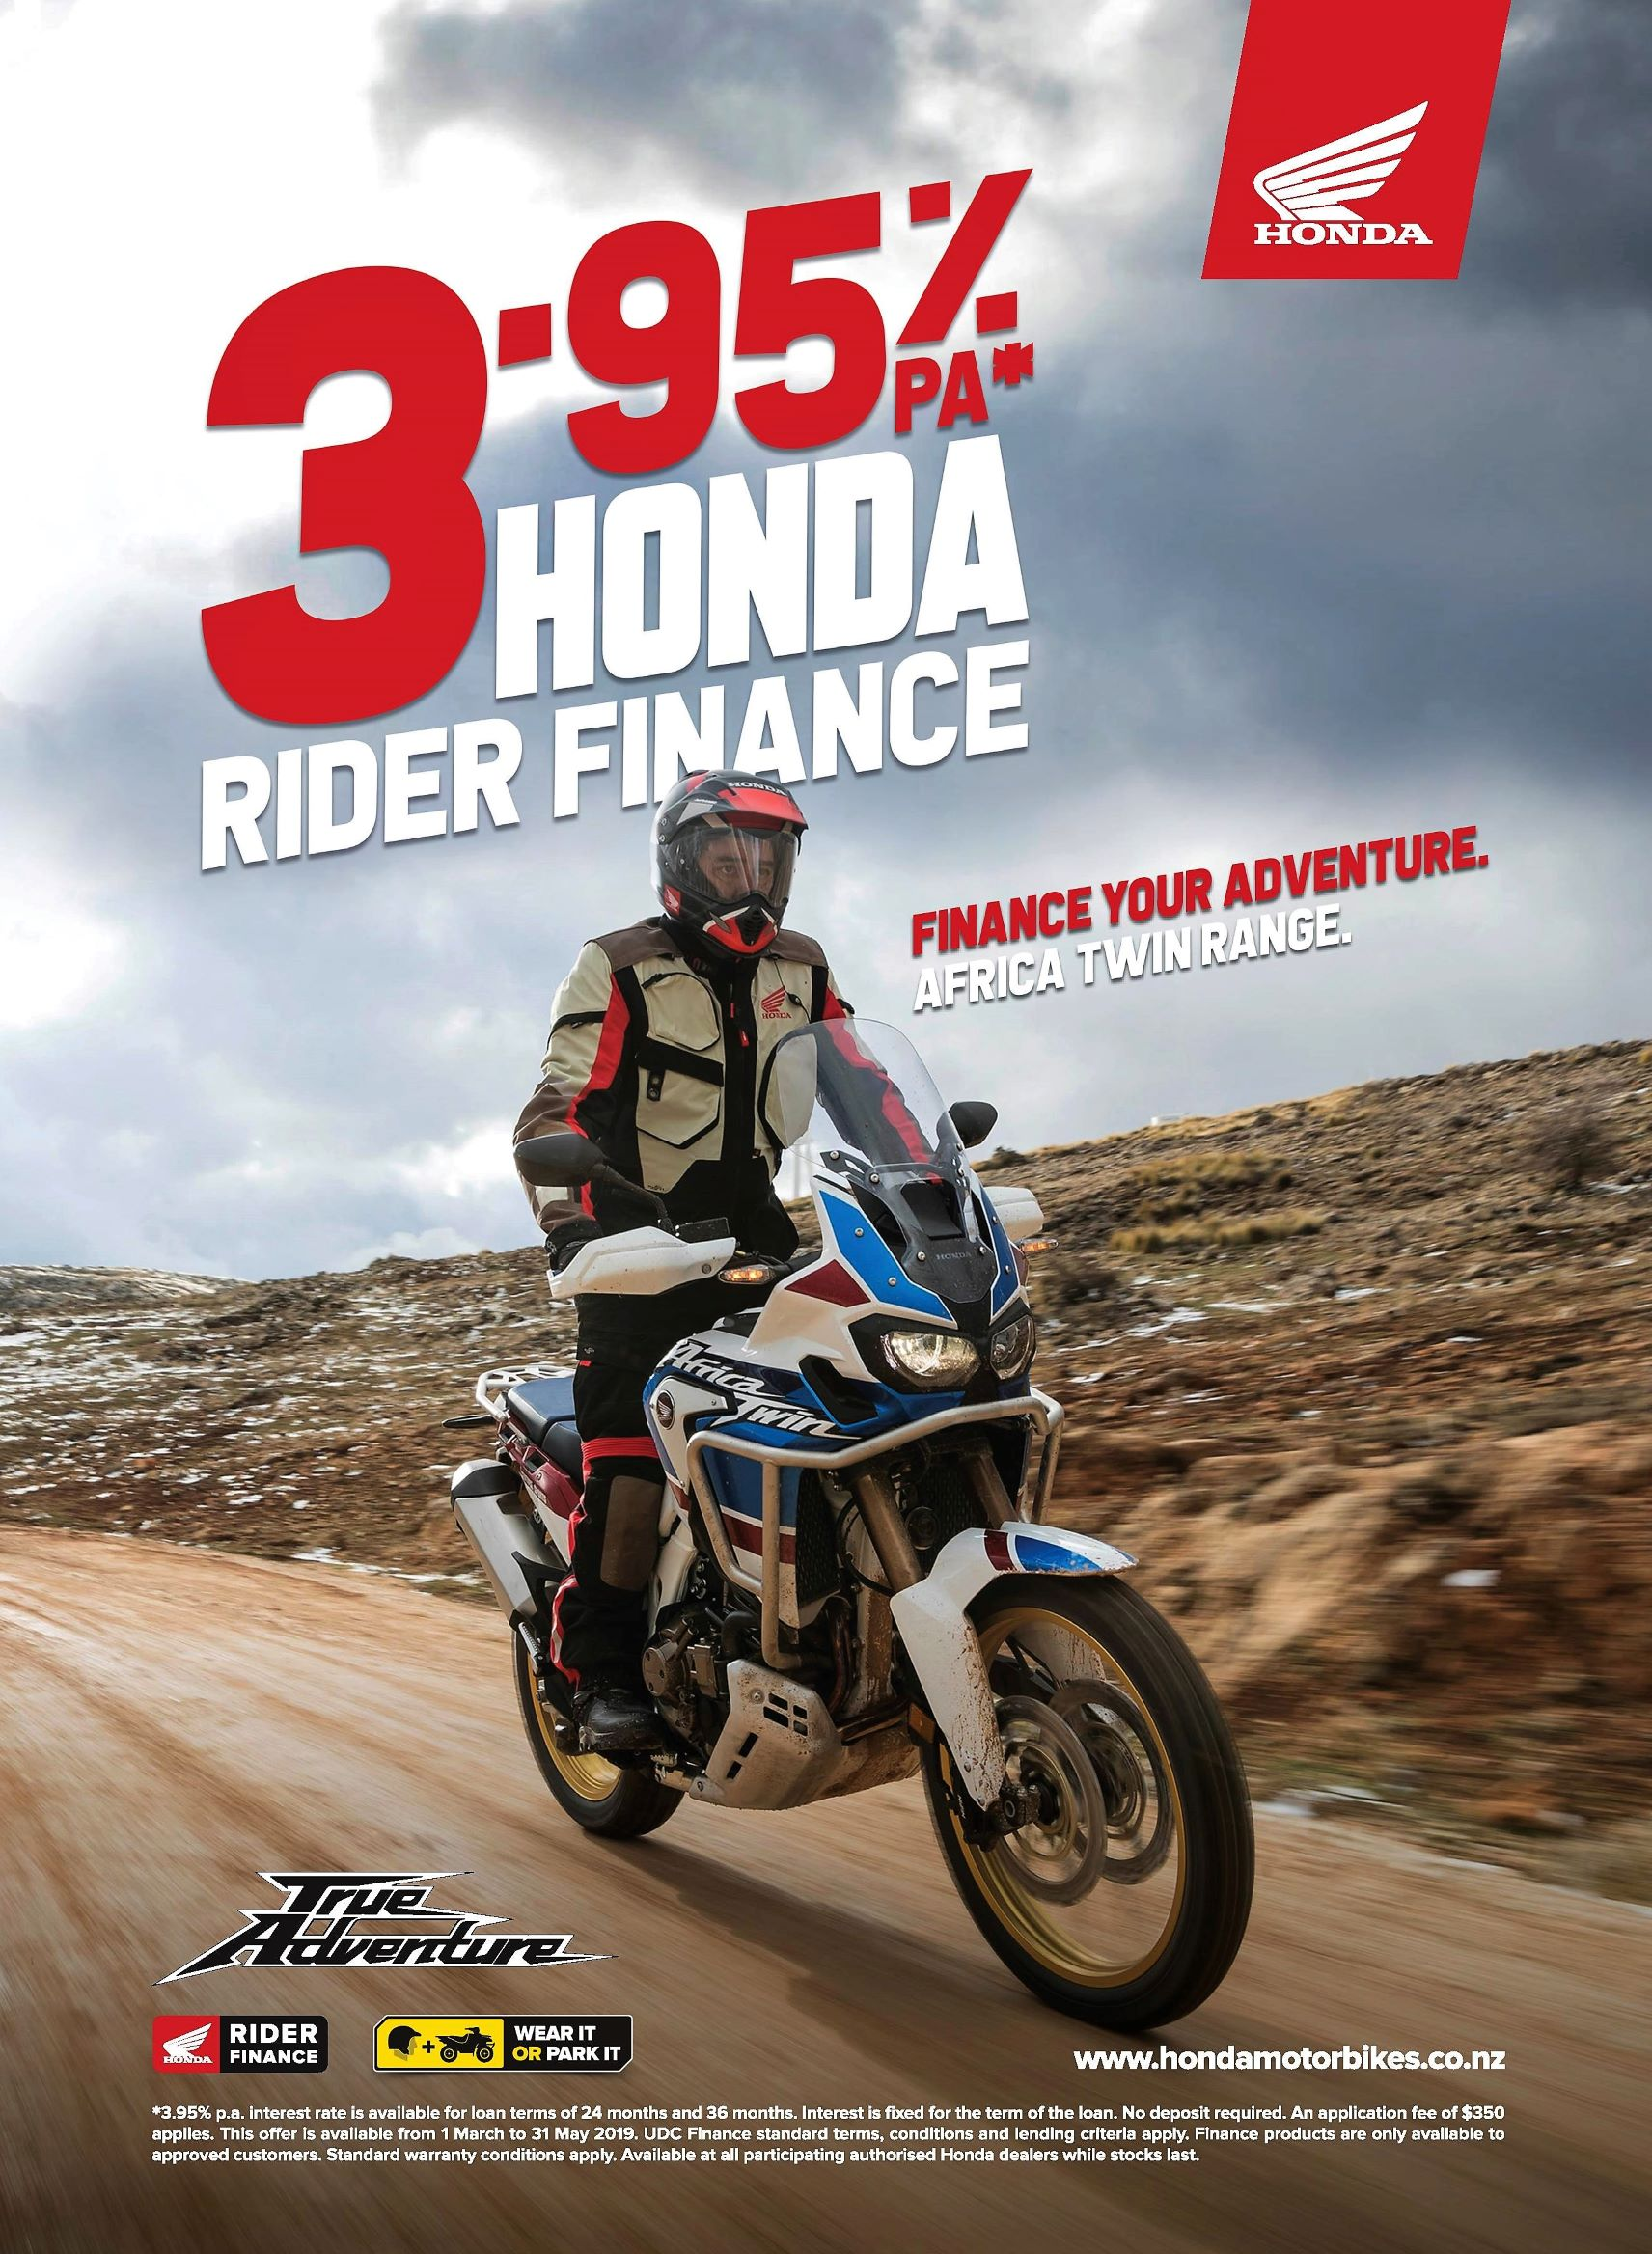 3.95% Finance on the Honda CRF1000 Africa Twin range